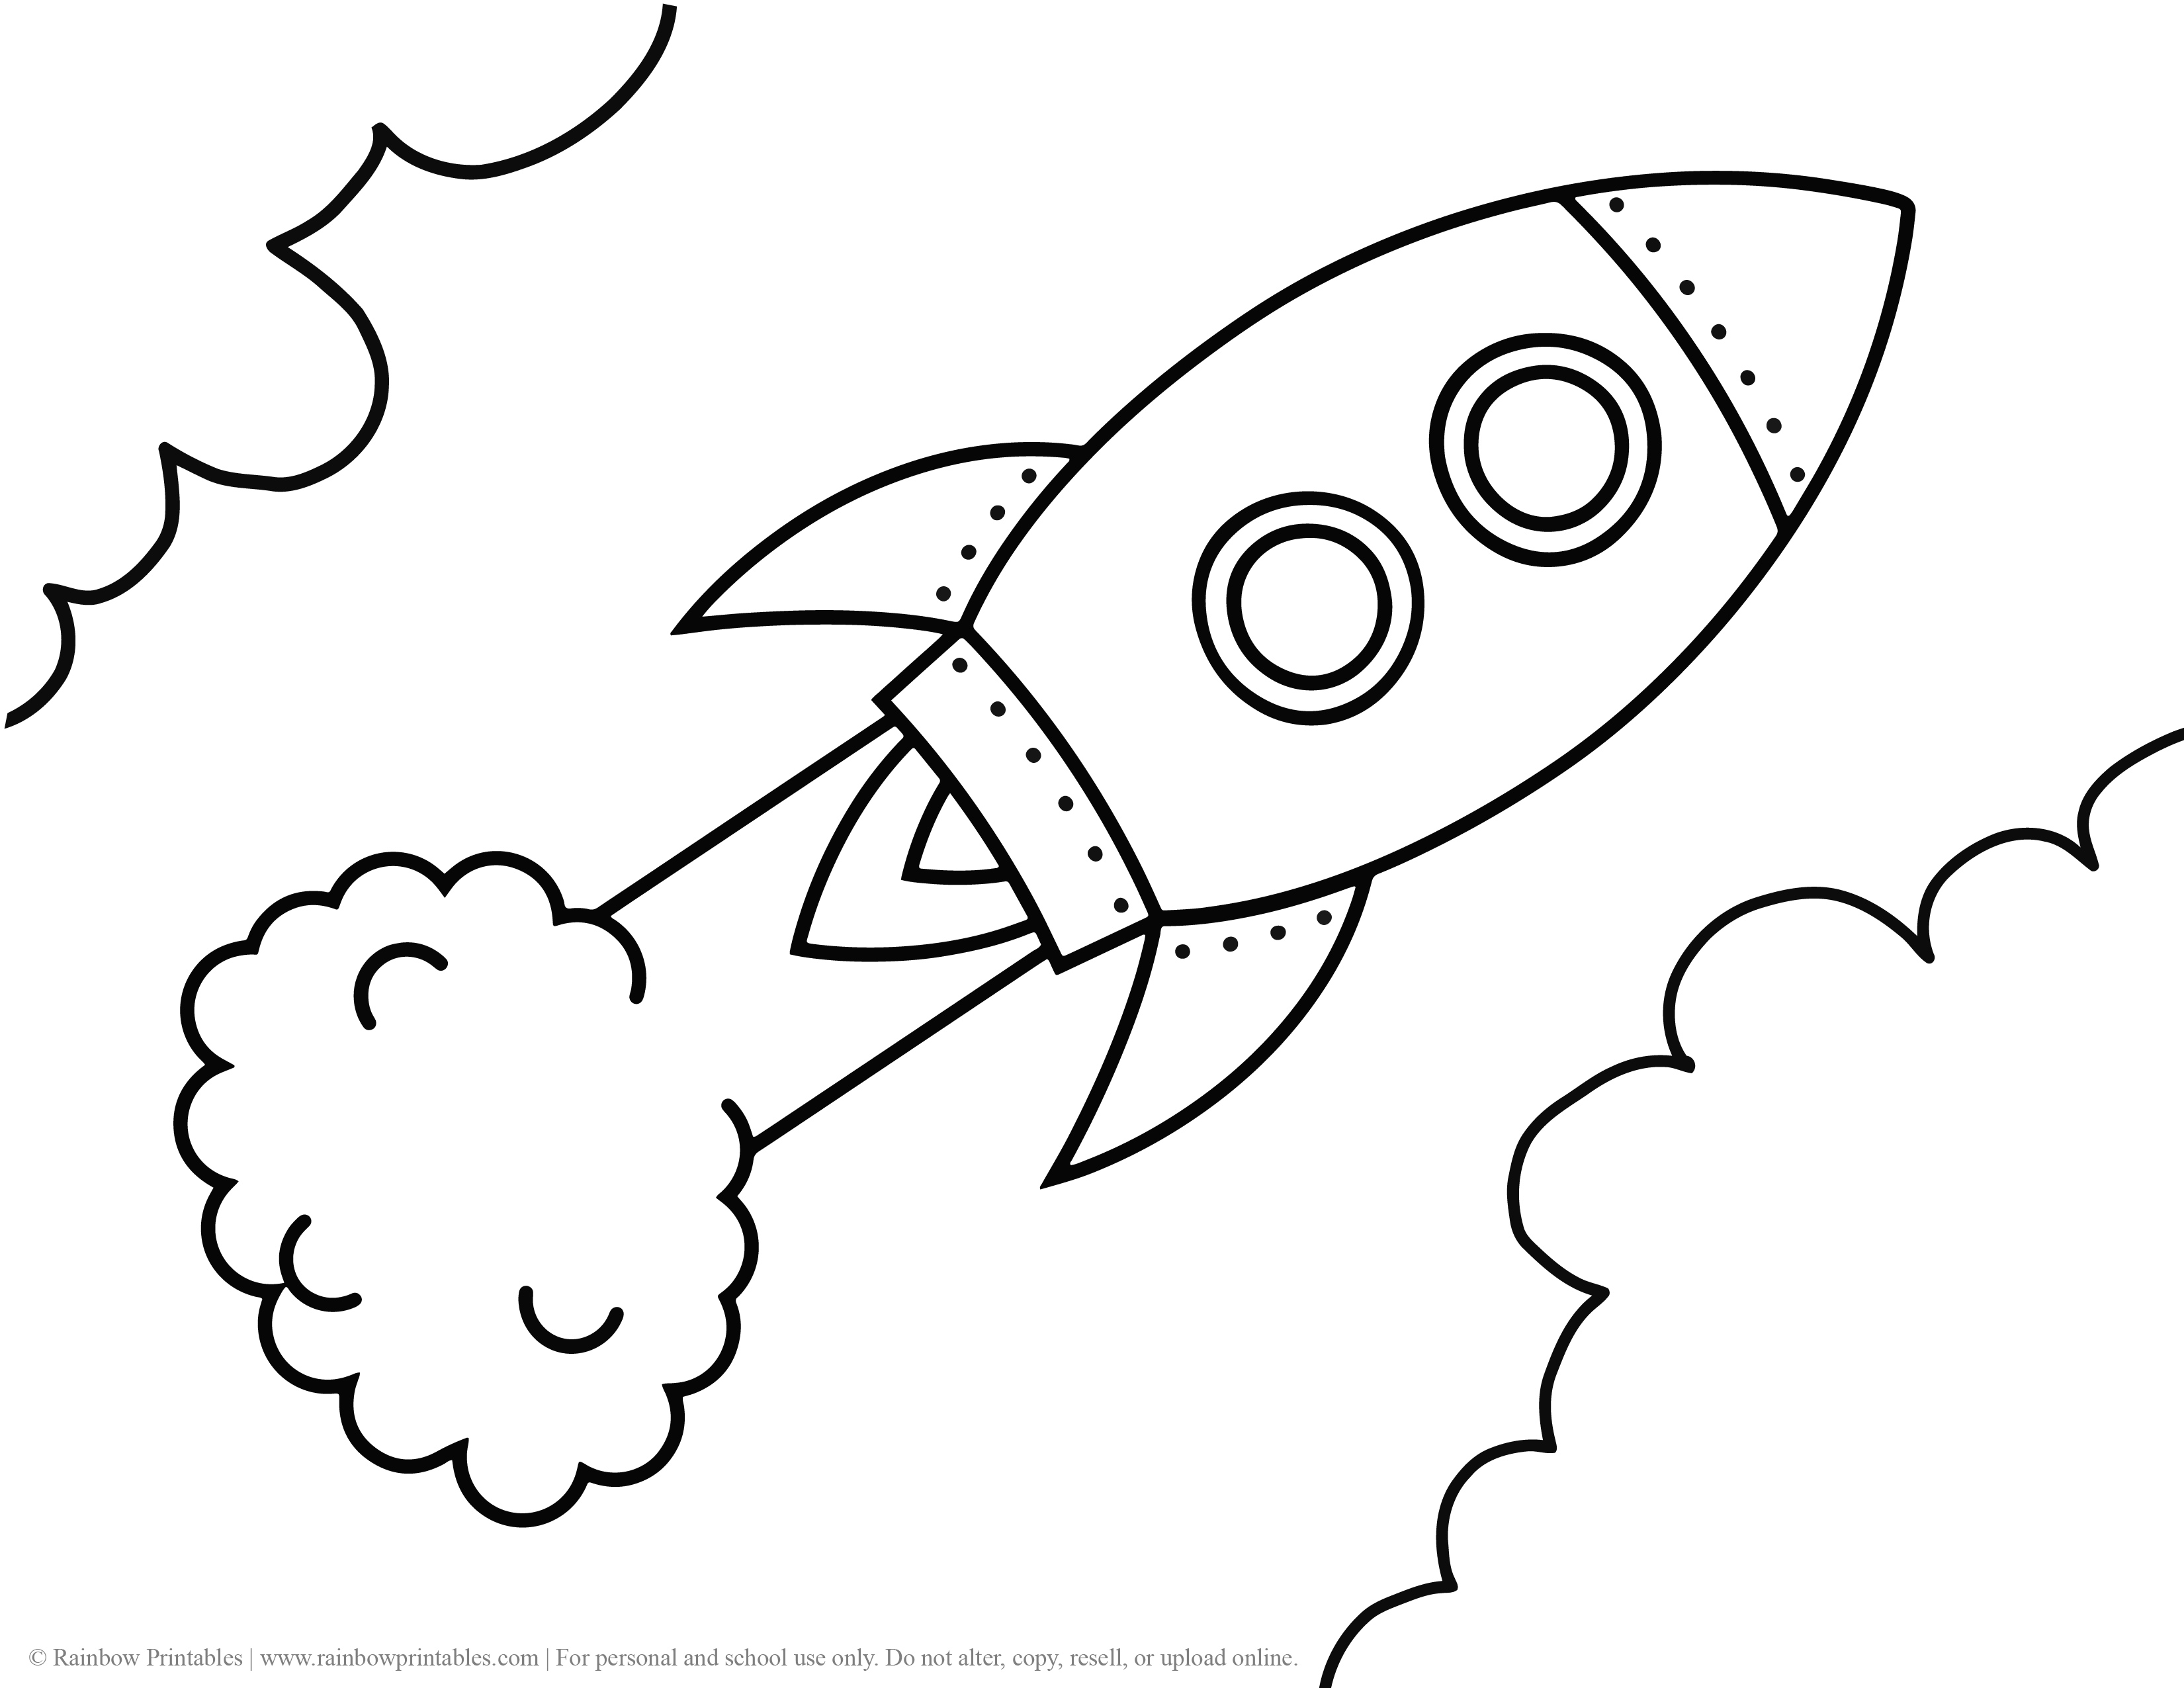 Rocketship Ship Space Meteor Launch Rocket Coloring Page for Kids